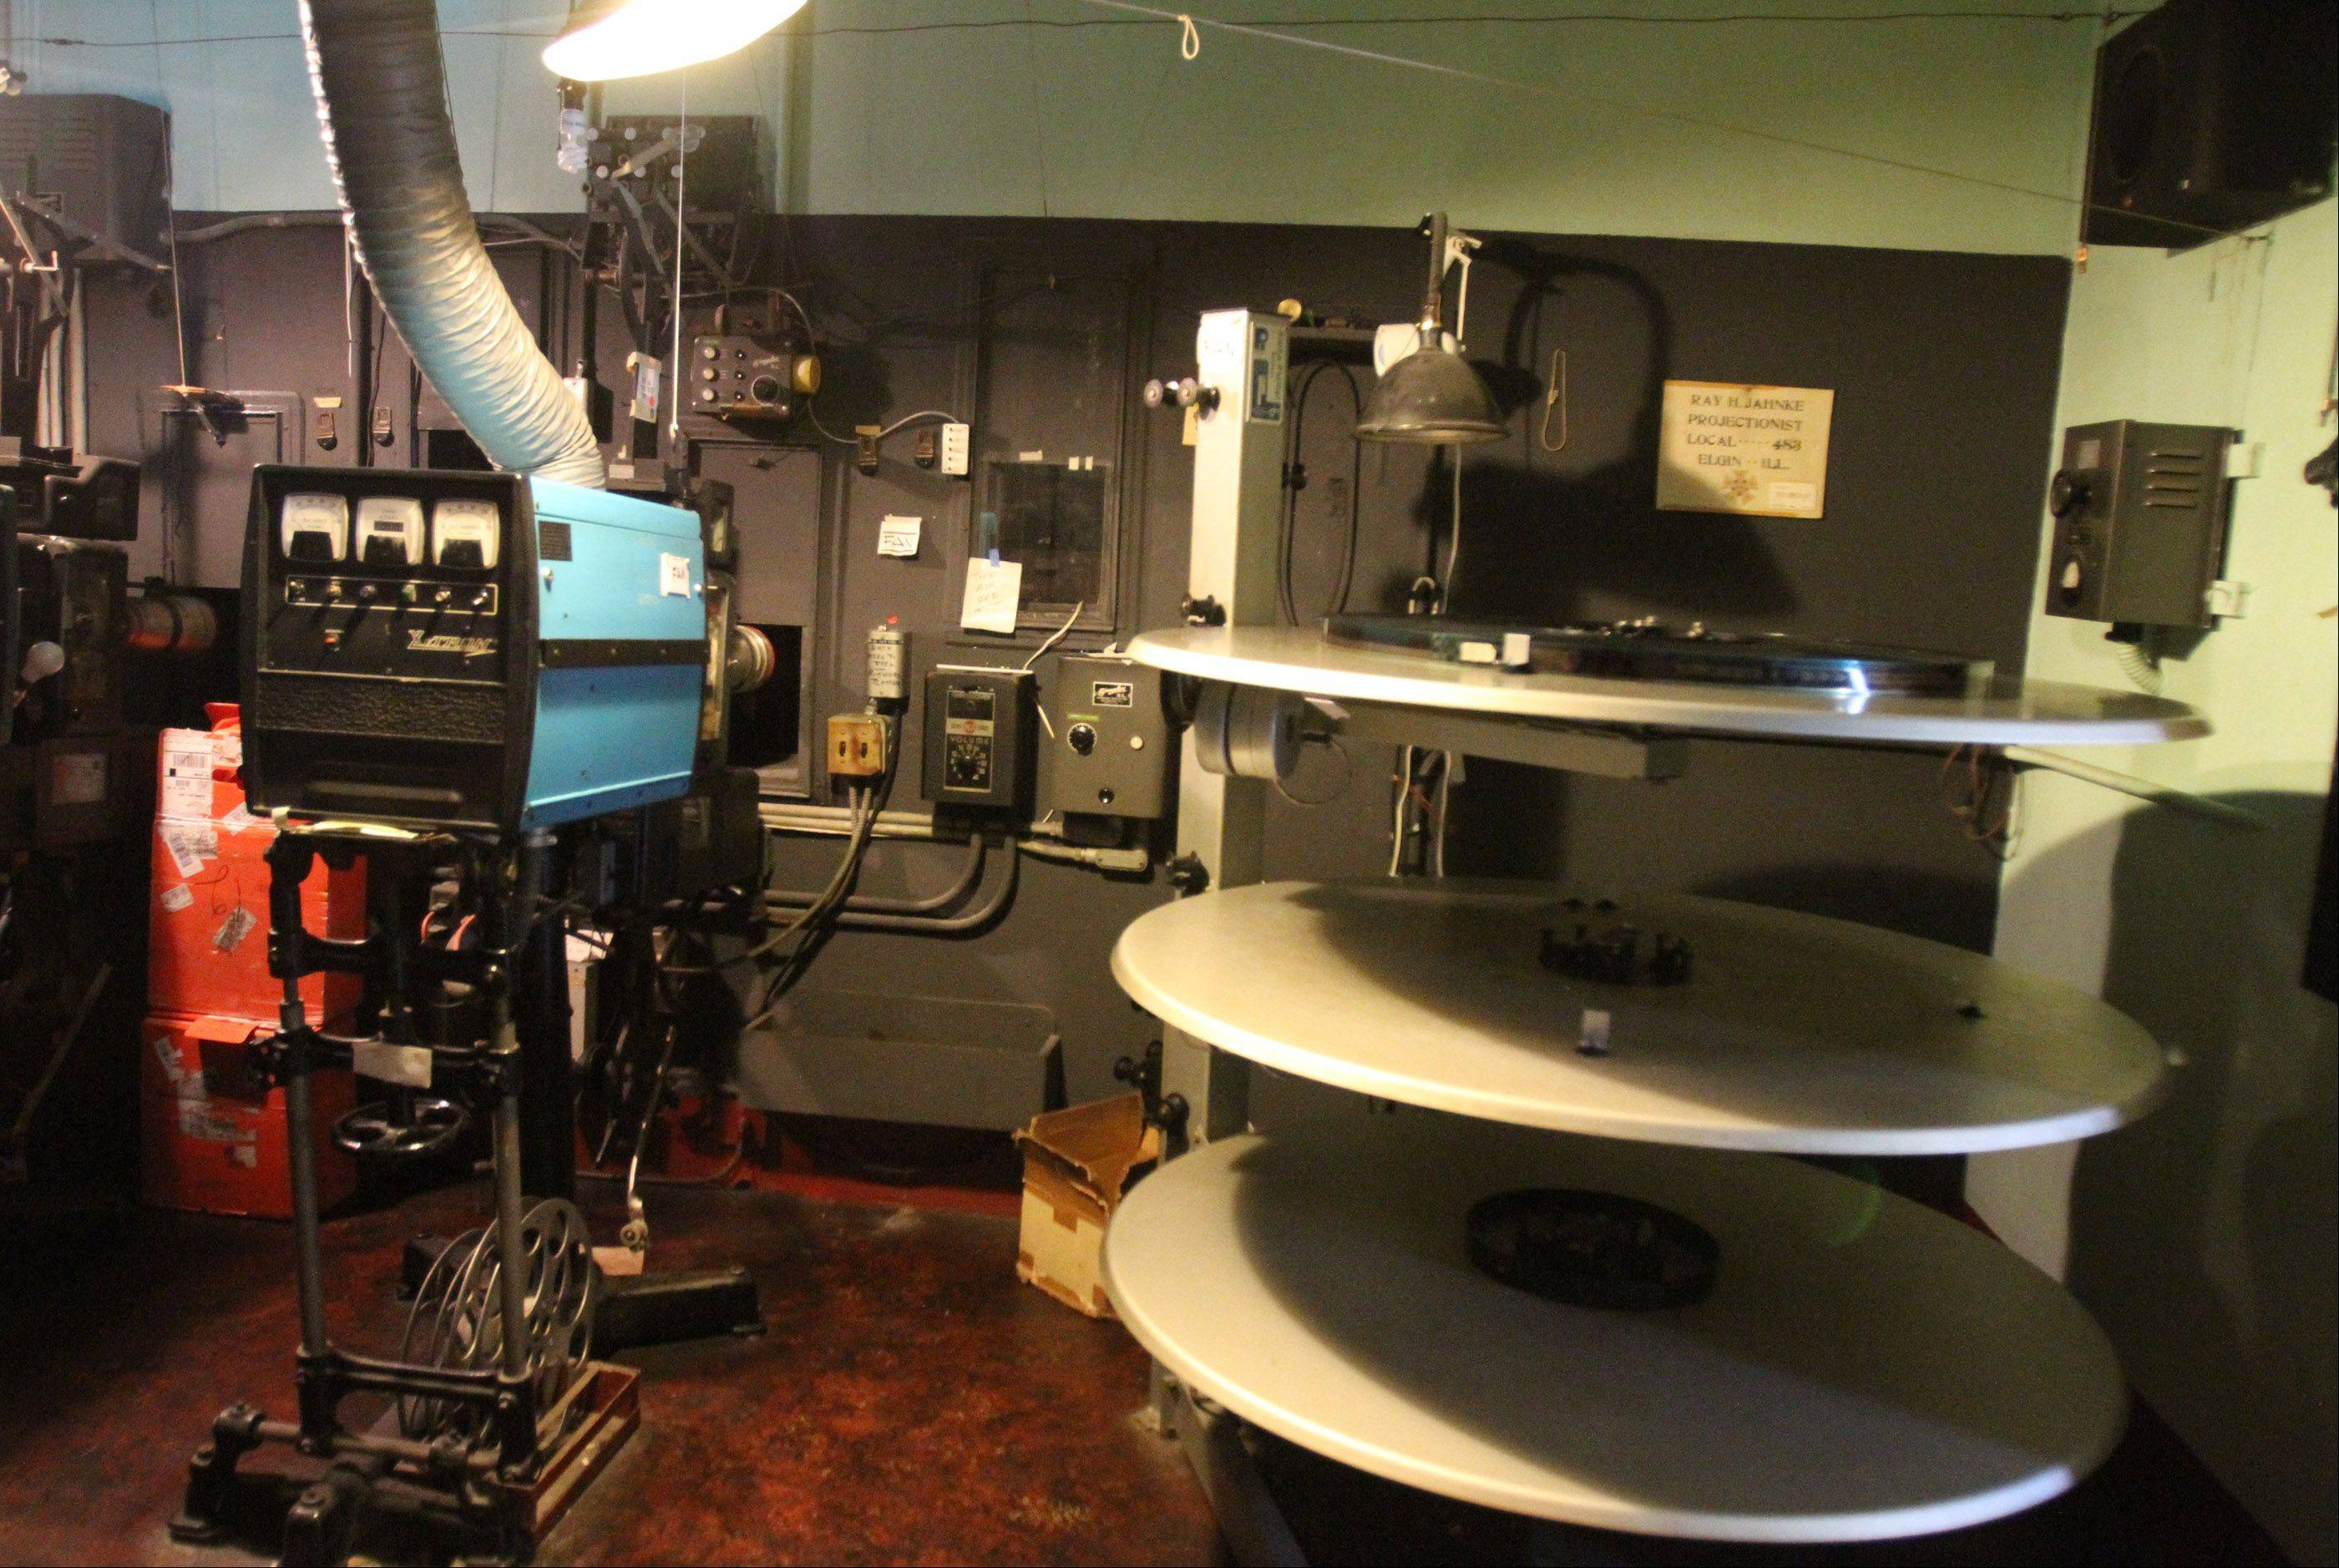 The Catlow theater co-owner Tim O'Connor said movie film is loaded onto a giant reel table that is then fed into the 10940-50s Simplex XL film projector at the theater in Barrington. O'Connor said that allows the film projector operator to show the film as one piece versus holding a new reel one-third of the way through a movie.